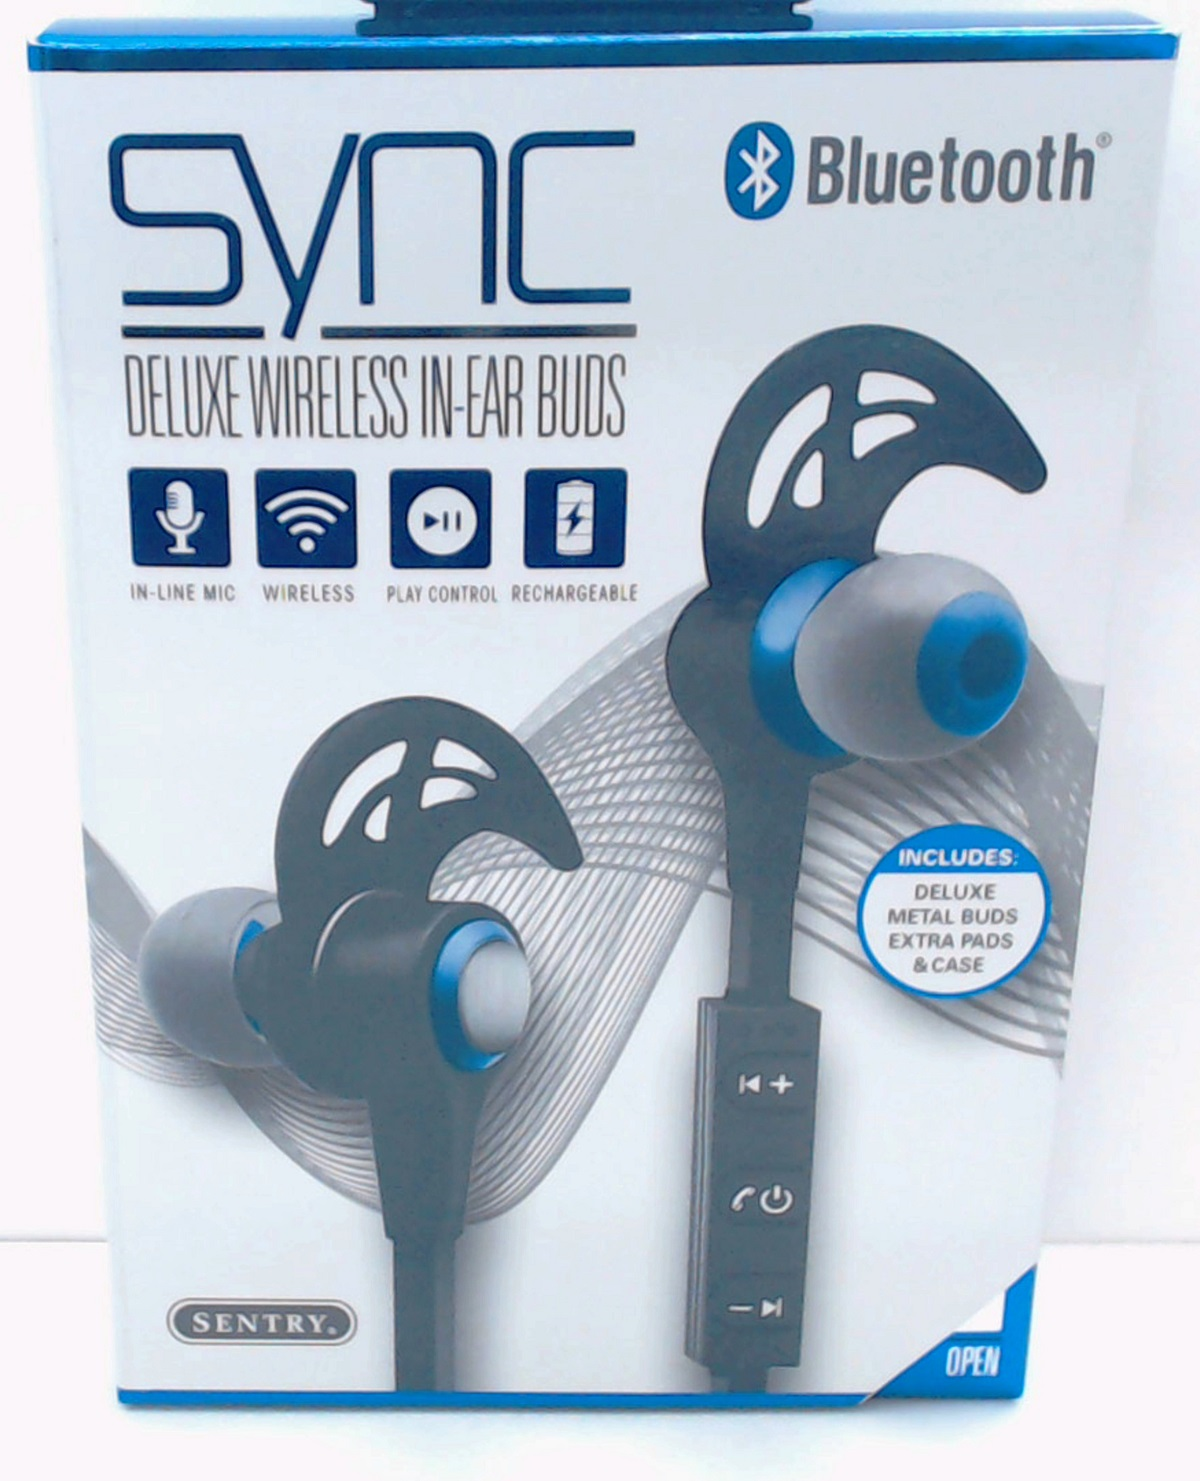 8a3120a4041 sentry-sync-bluetooth-rechargeable-wireless-in-ear-buds-with-in-line-mic -bt550-4.jpg